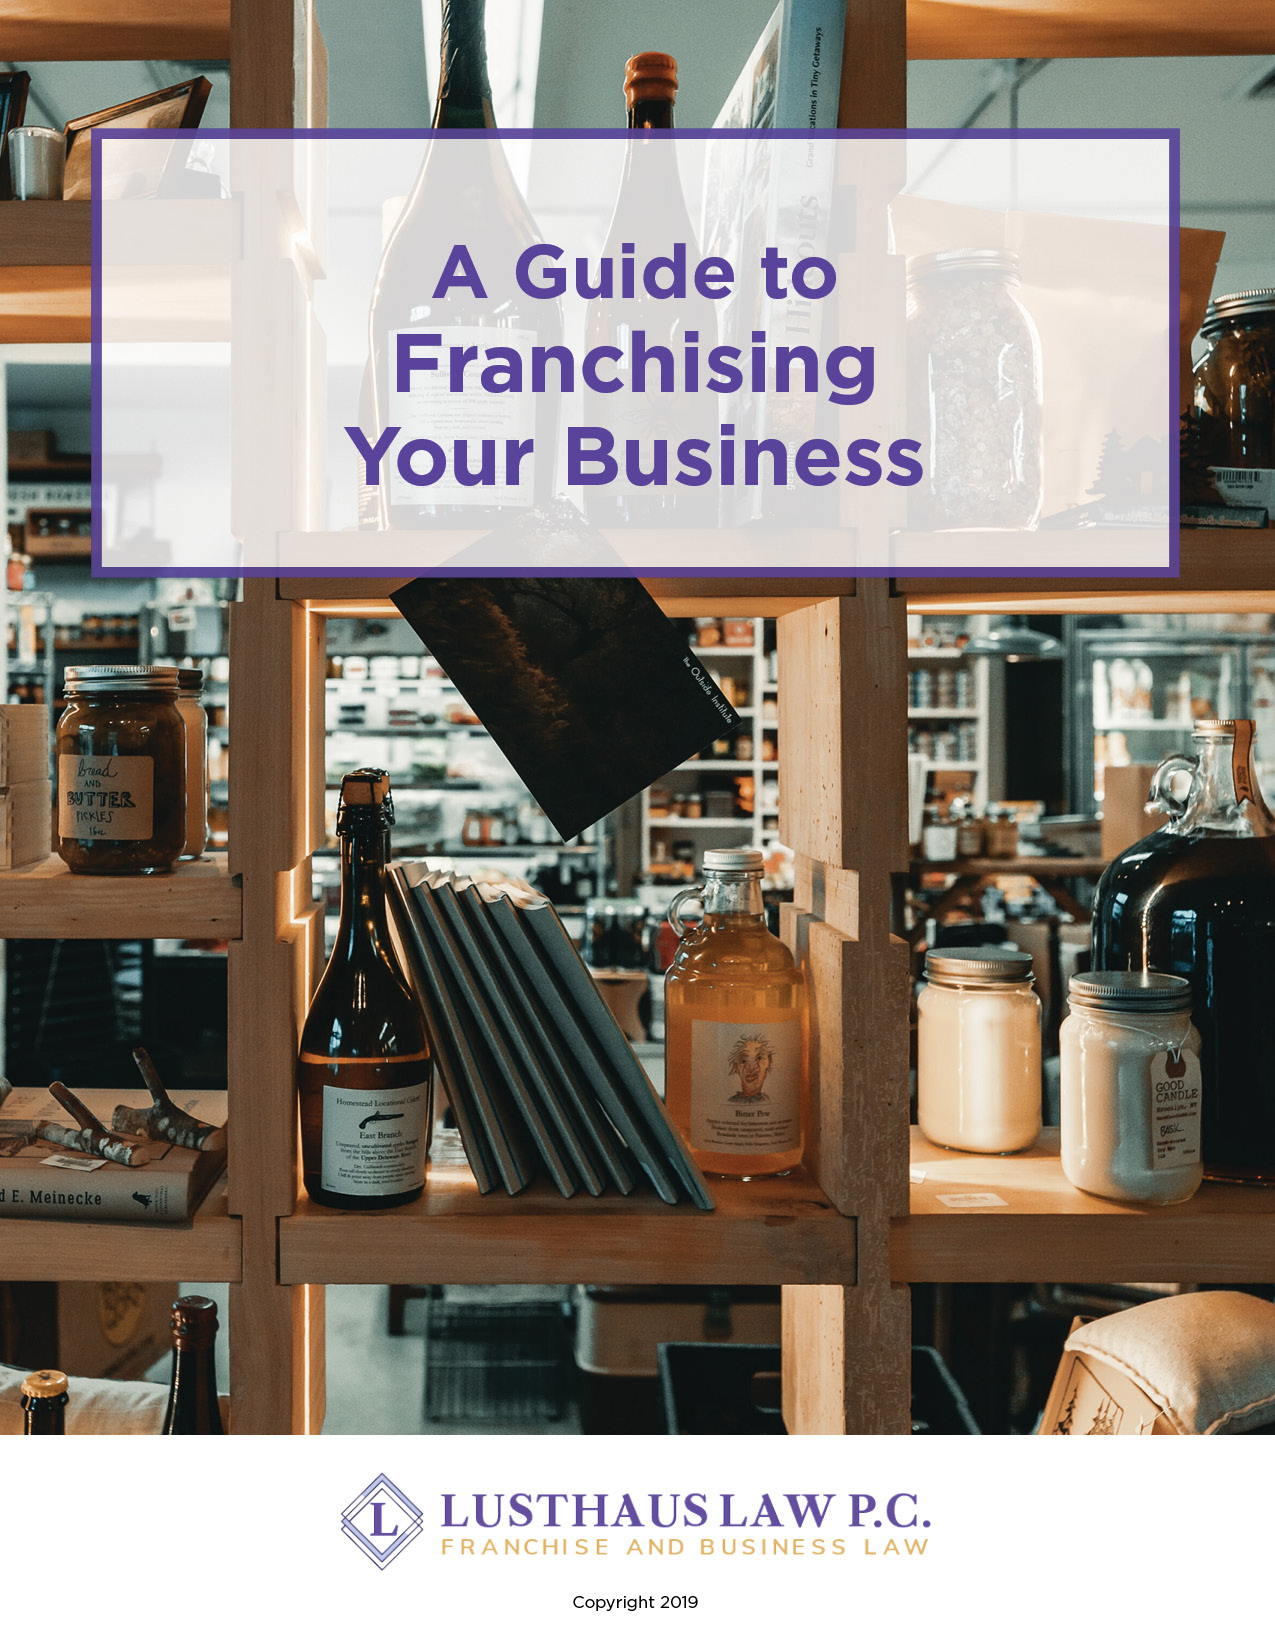 Lusthaus_Ebook_A-Guide-To-Franchising-Your-Business_Final